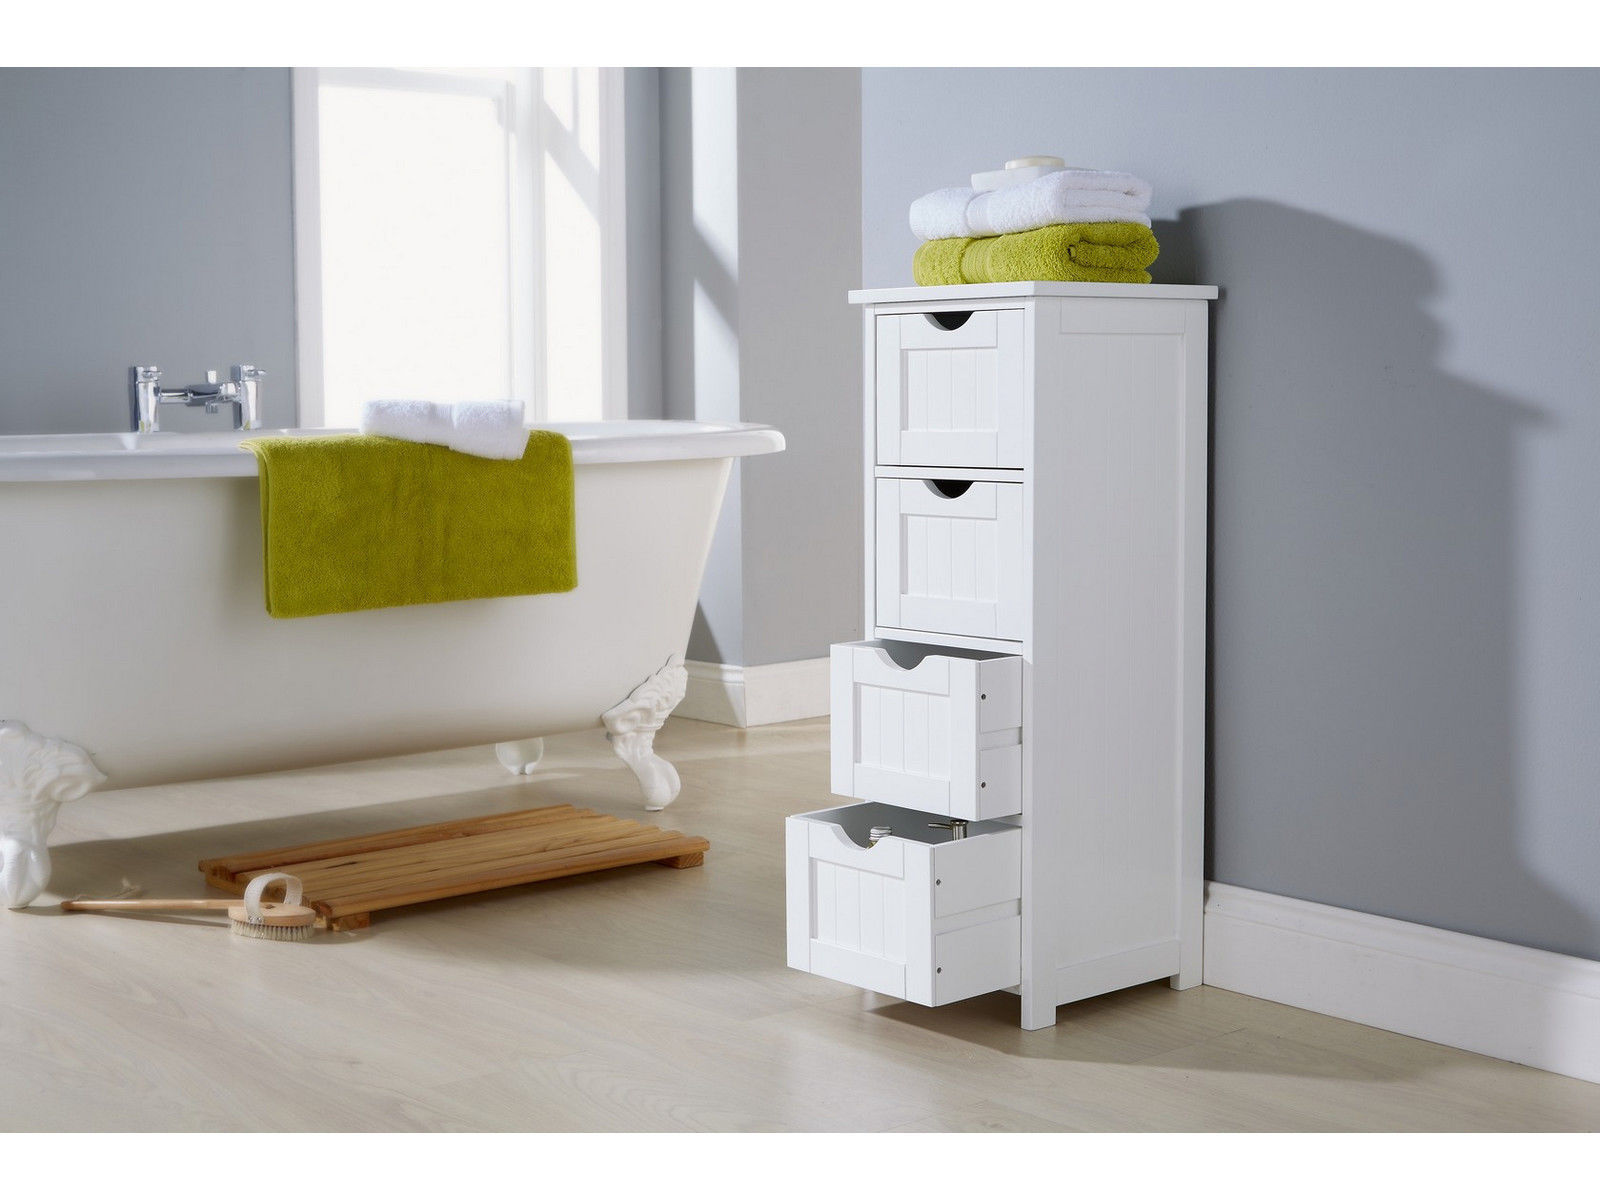 Shaker Style Bathroom Cabinet 4 Drawer Storage Unit